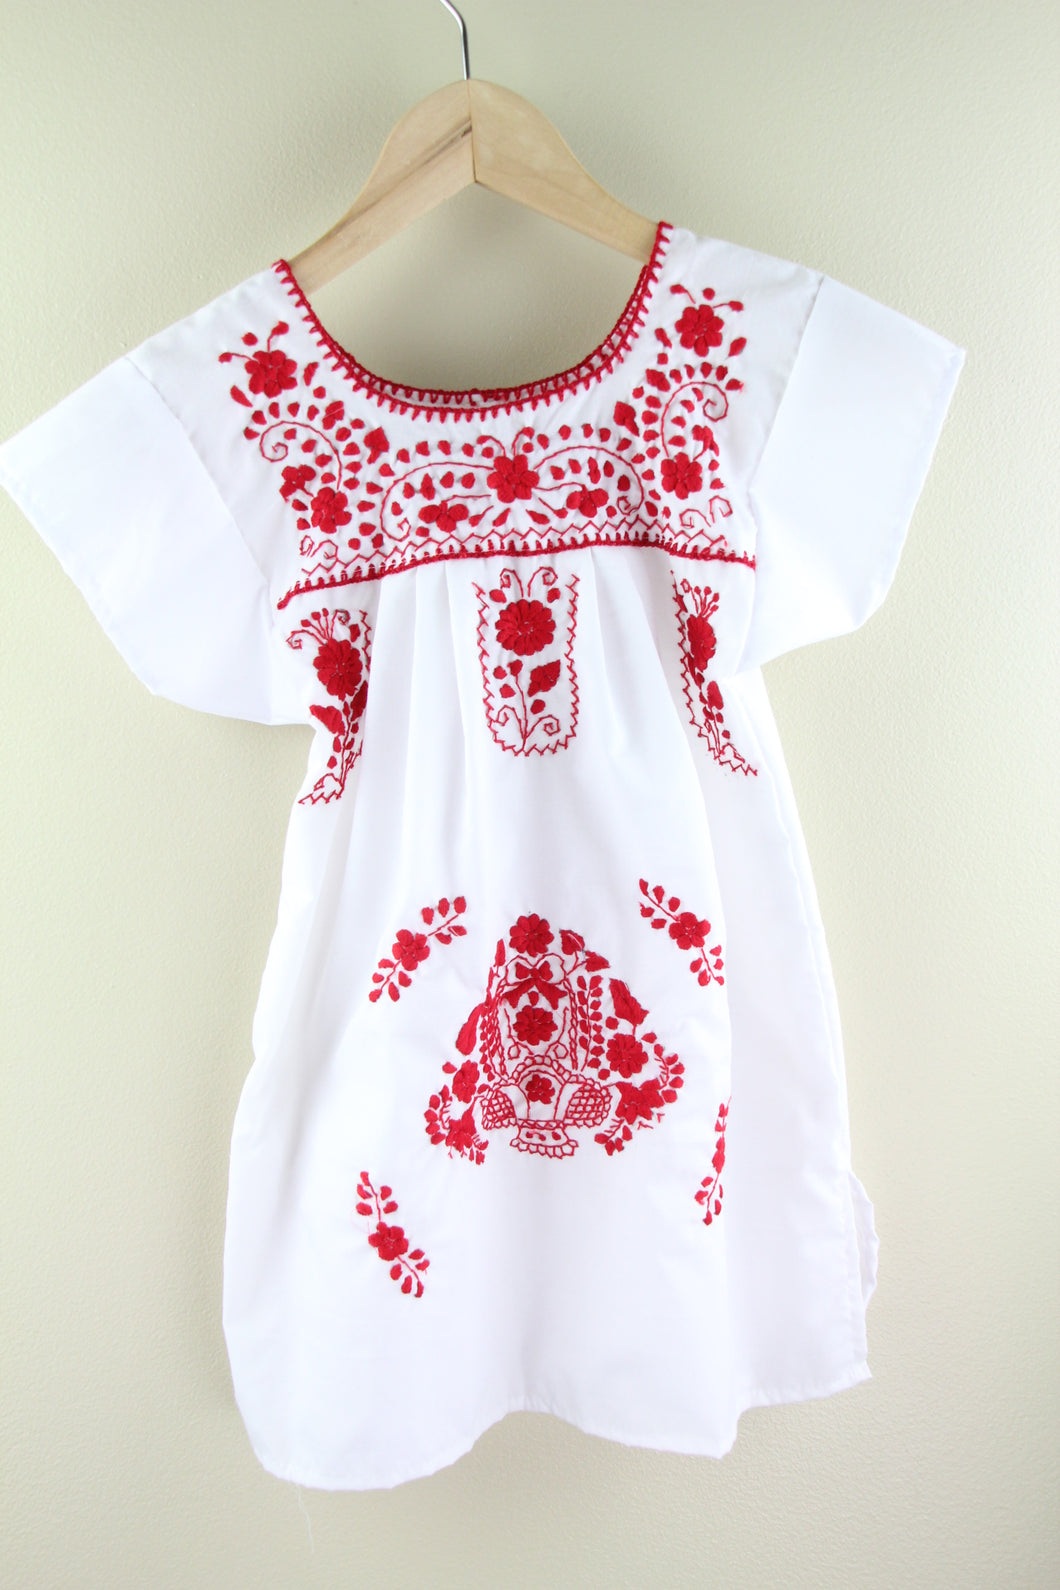 White/Red Kids Size 4 Dress